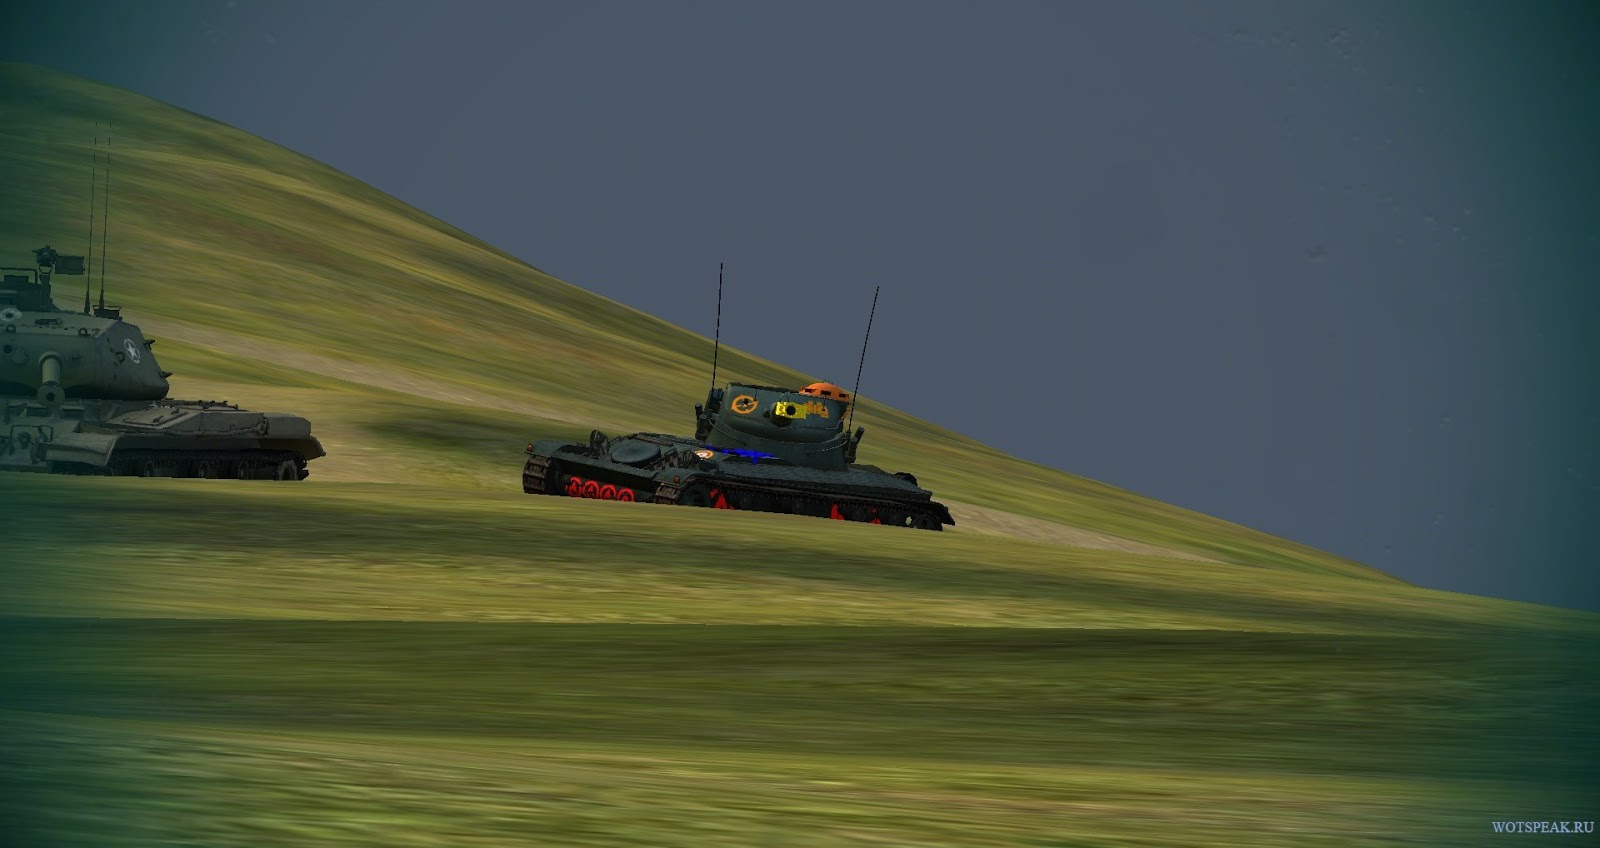 sae aimbot mod for wot